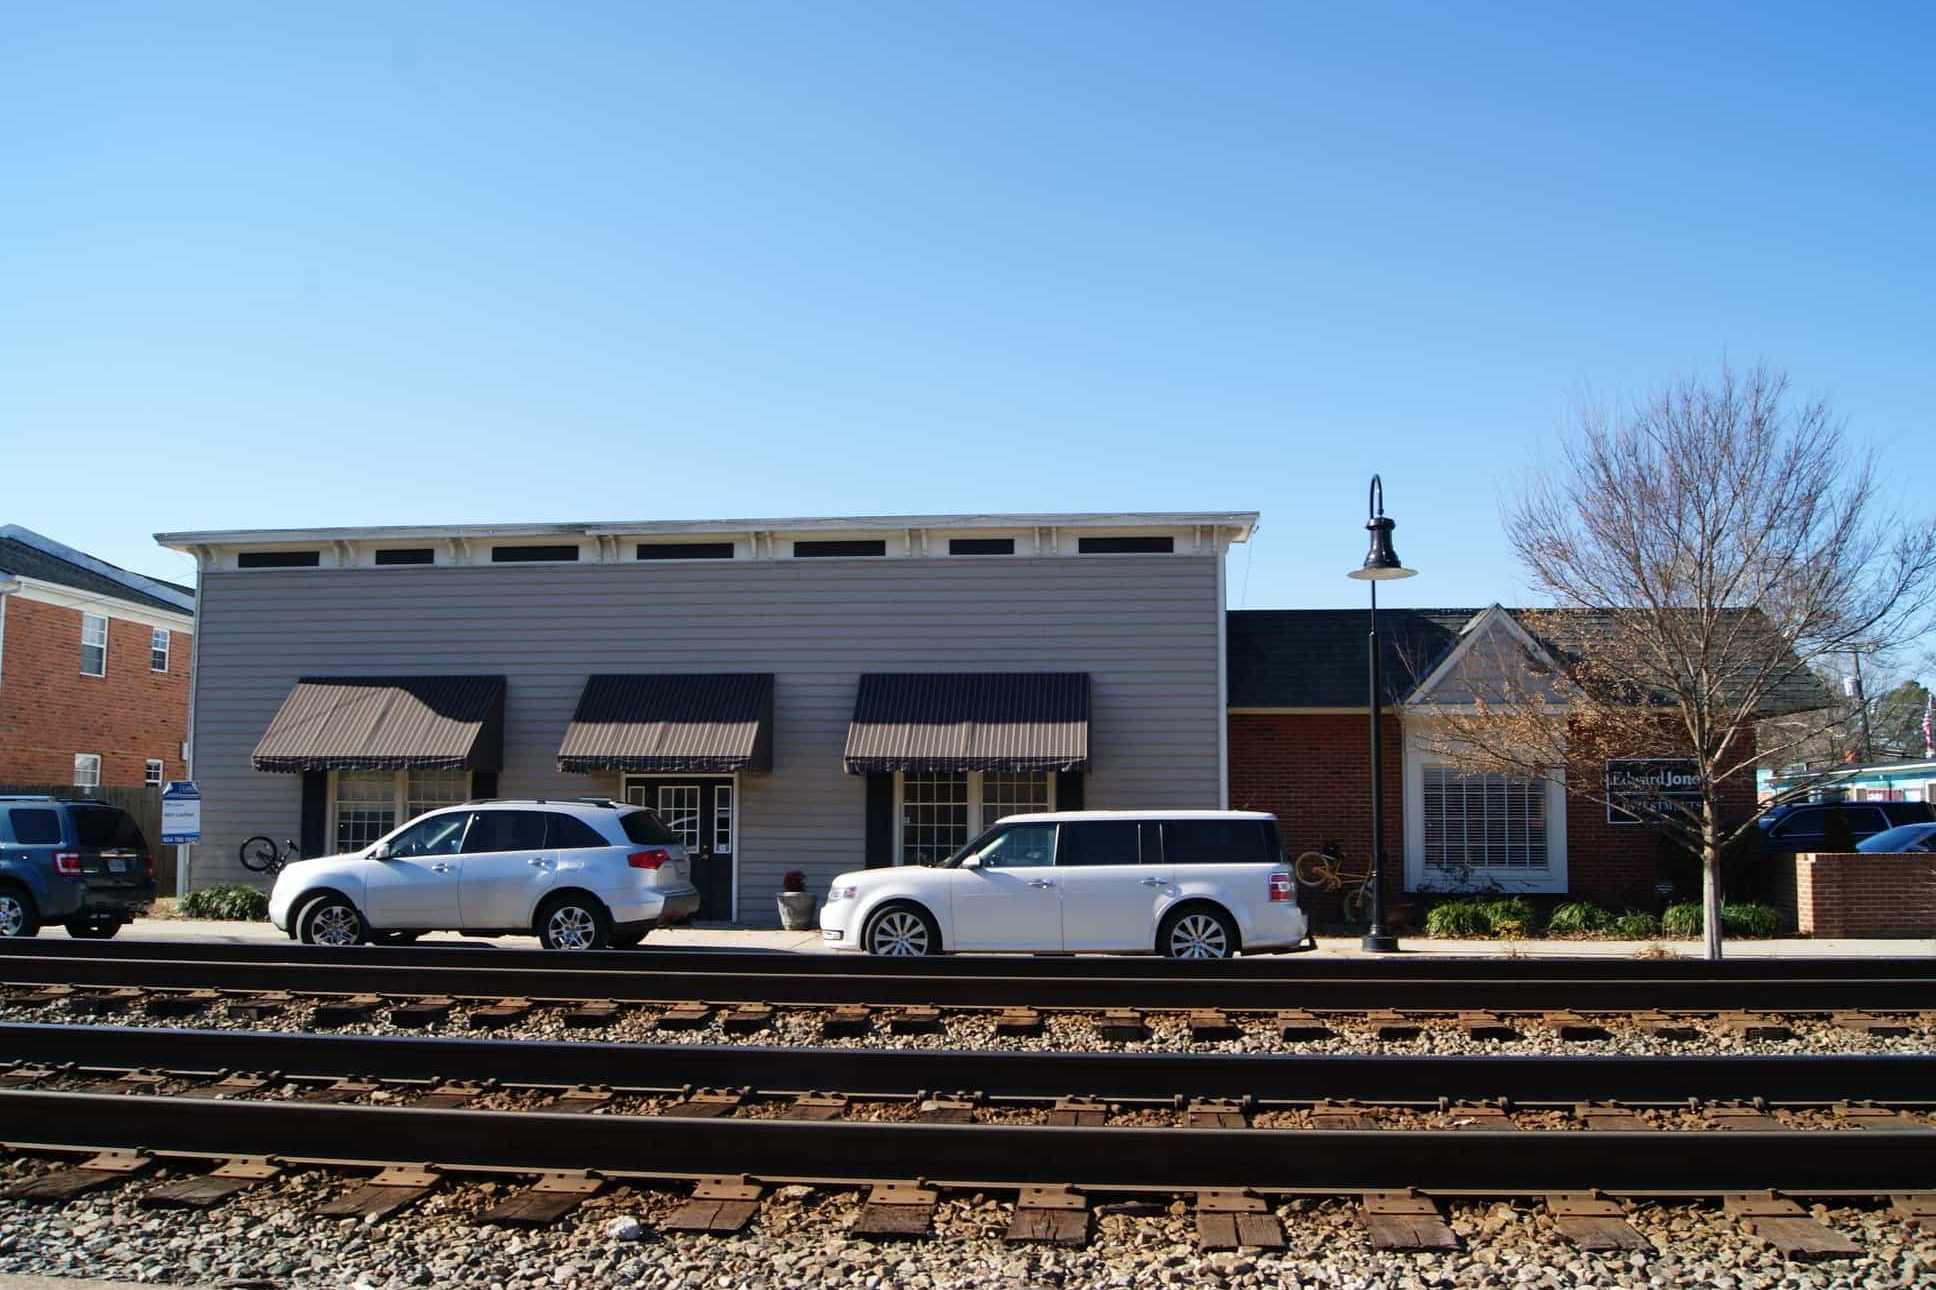 210 S Railroad - One office at 210 S Railroad on the tracks and one large office space in rear of building.Contact: Tim Shelton(804) 337-2401